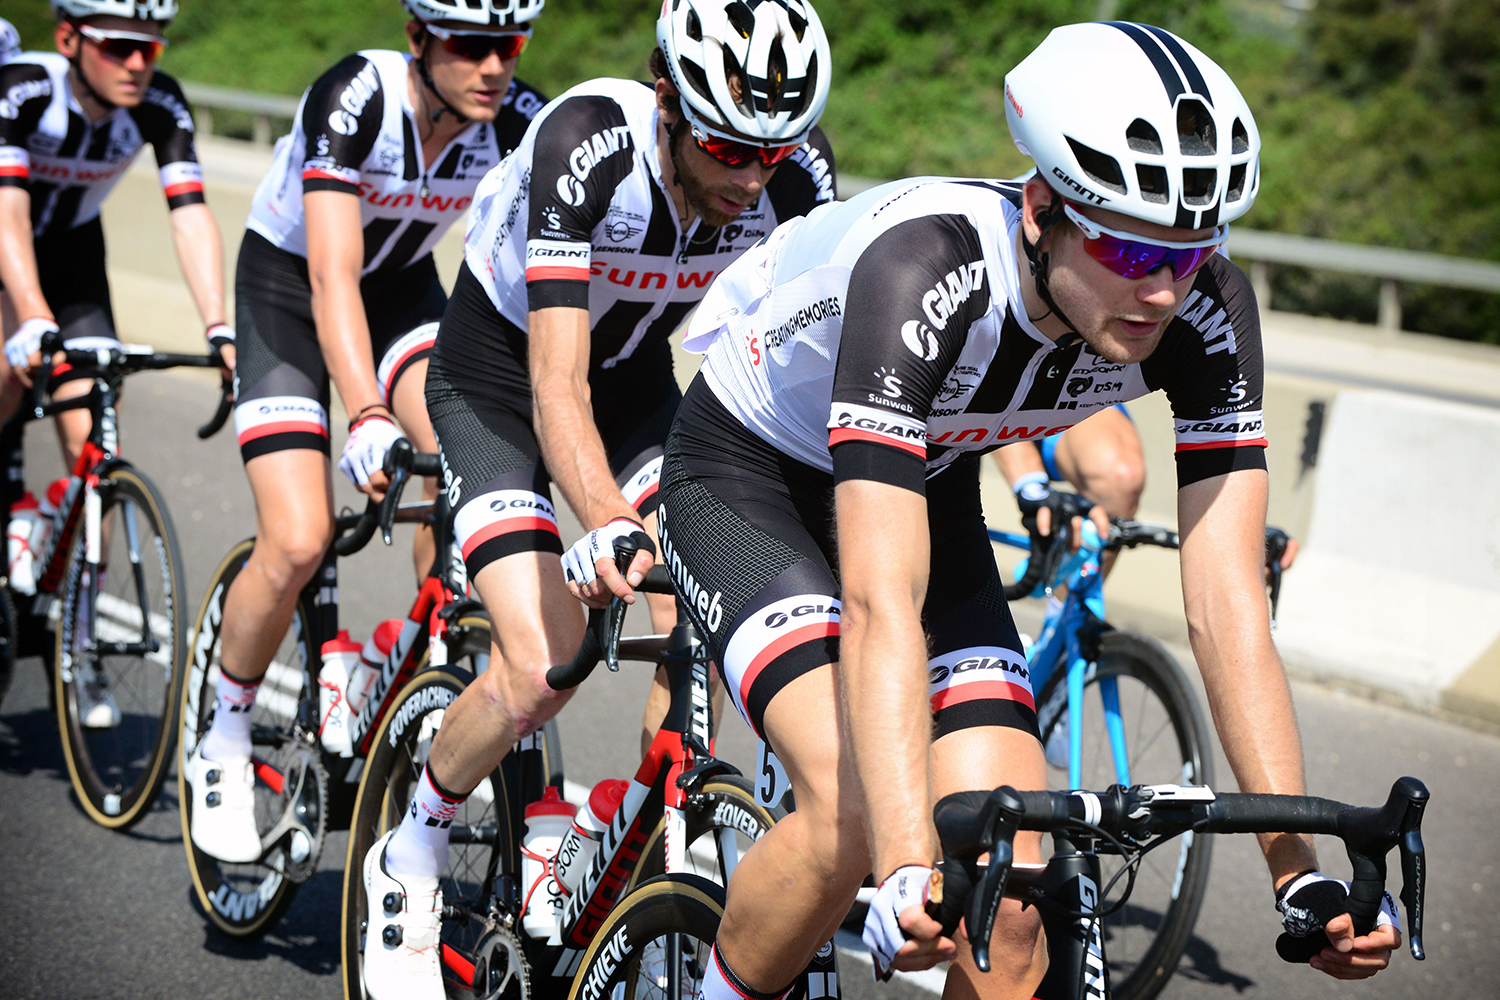 Tel Aviv - Israel - wielrennen - cycling - cyclisme - radsport -  Lennard HOFSTEDE (Netherlands / Team Sunweb) - Laurens TEN DAM (Netherlands / Team Sunweb) - Louis VERVAEKE (Belgium / Team Sunweb) - Sam OOMEN (Netherlands / Team Sunweb)  pictured during the 101st Giro d'Italia 2018 - stage 2 from Haifa to Tel Aviv (167 KM) - photo Brian Hodes/Cor Vos © 2018